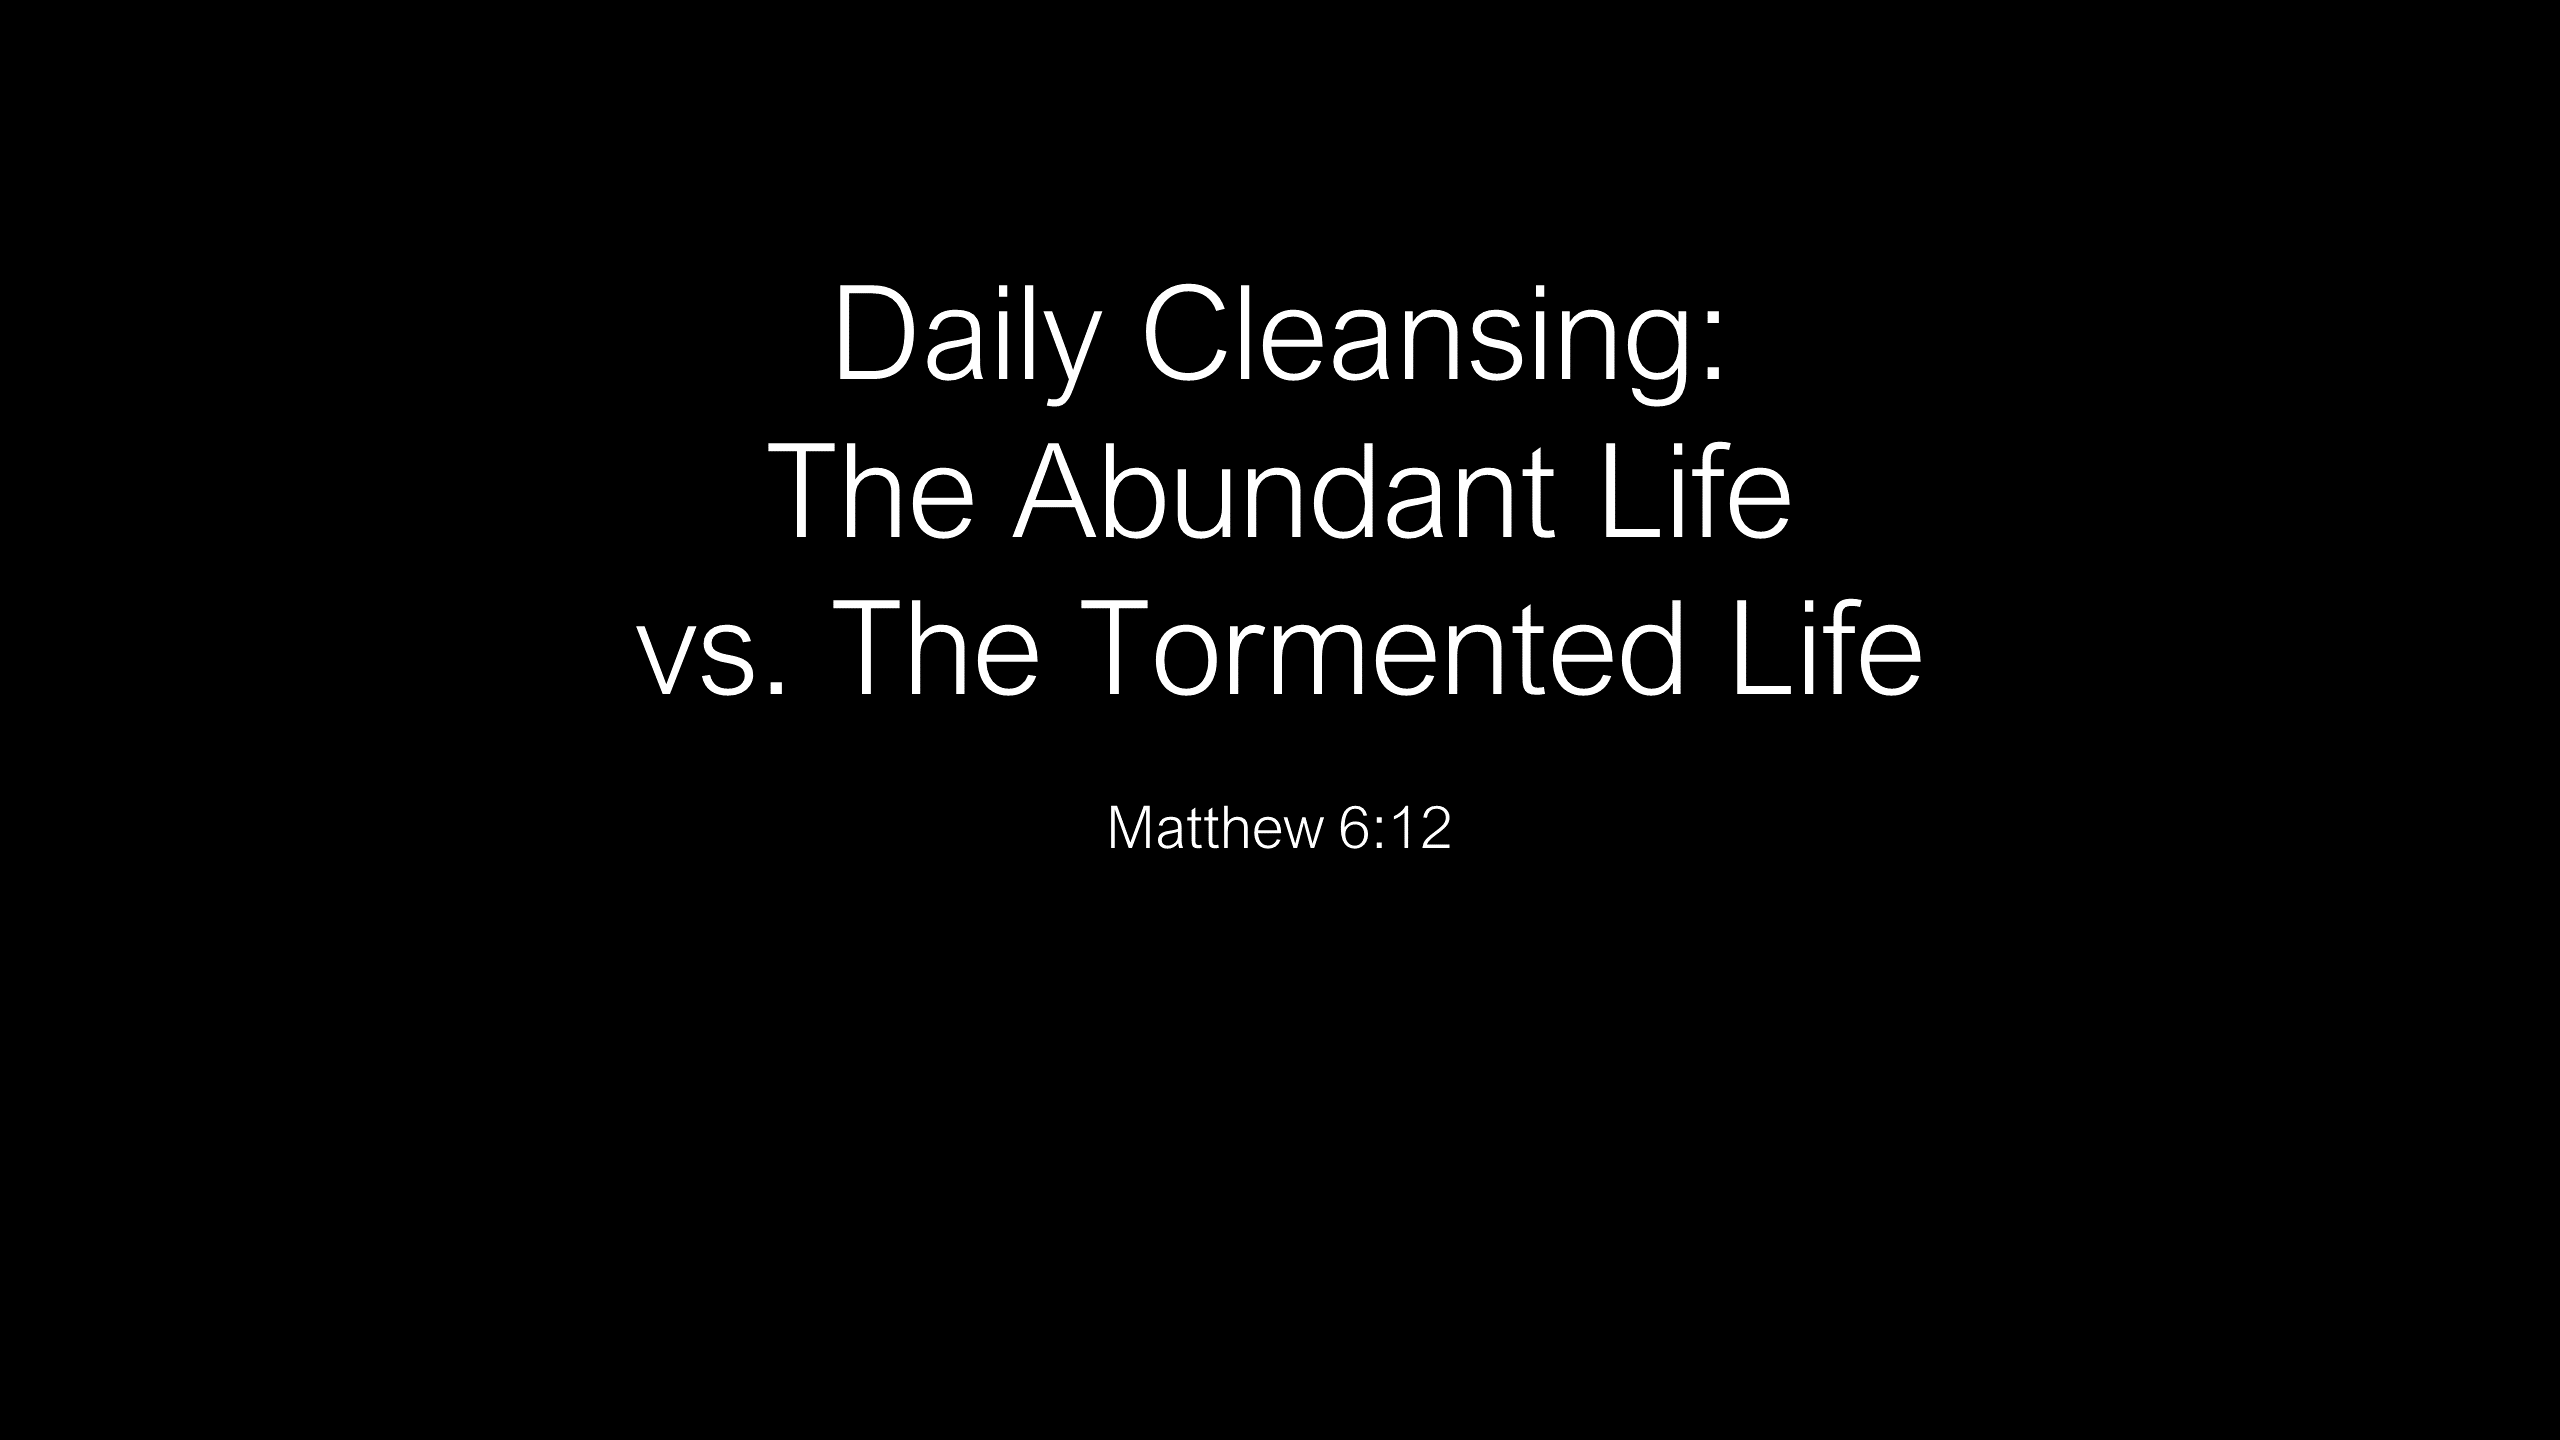 SWS-03 - Daily Cleansing - The Abundant Life Vs. The Tormented Life (1)